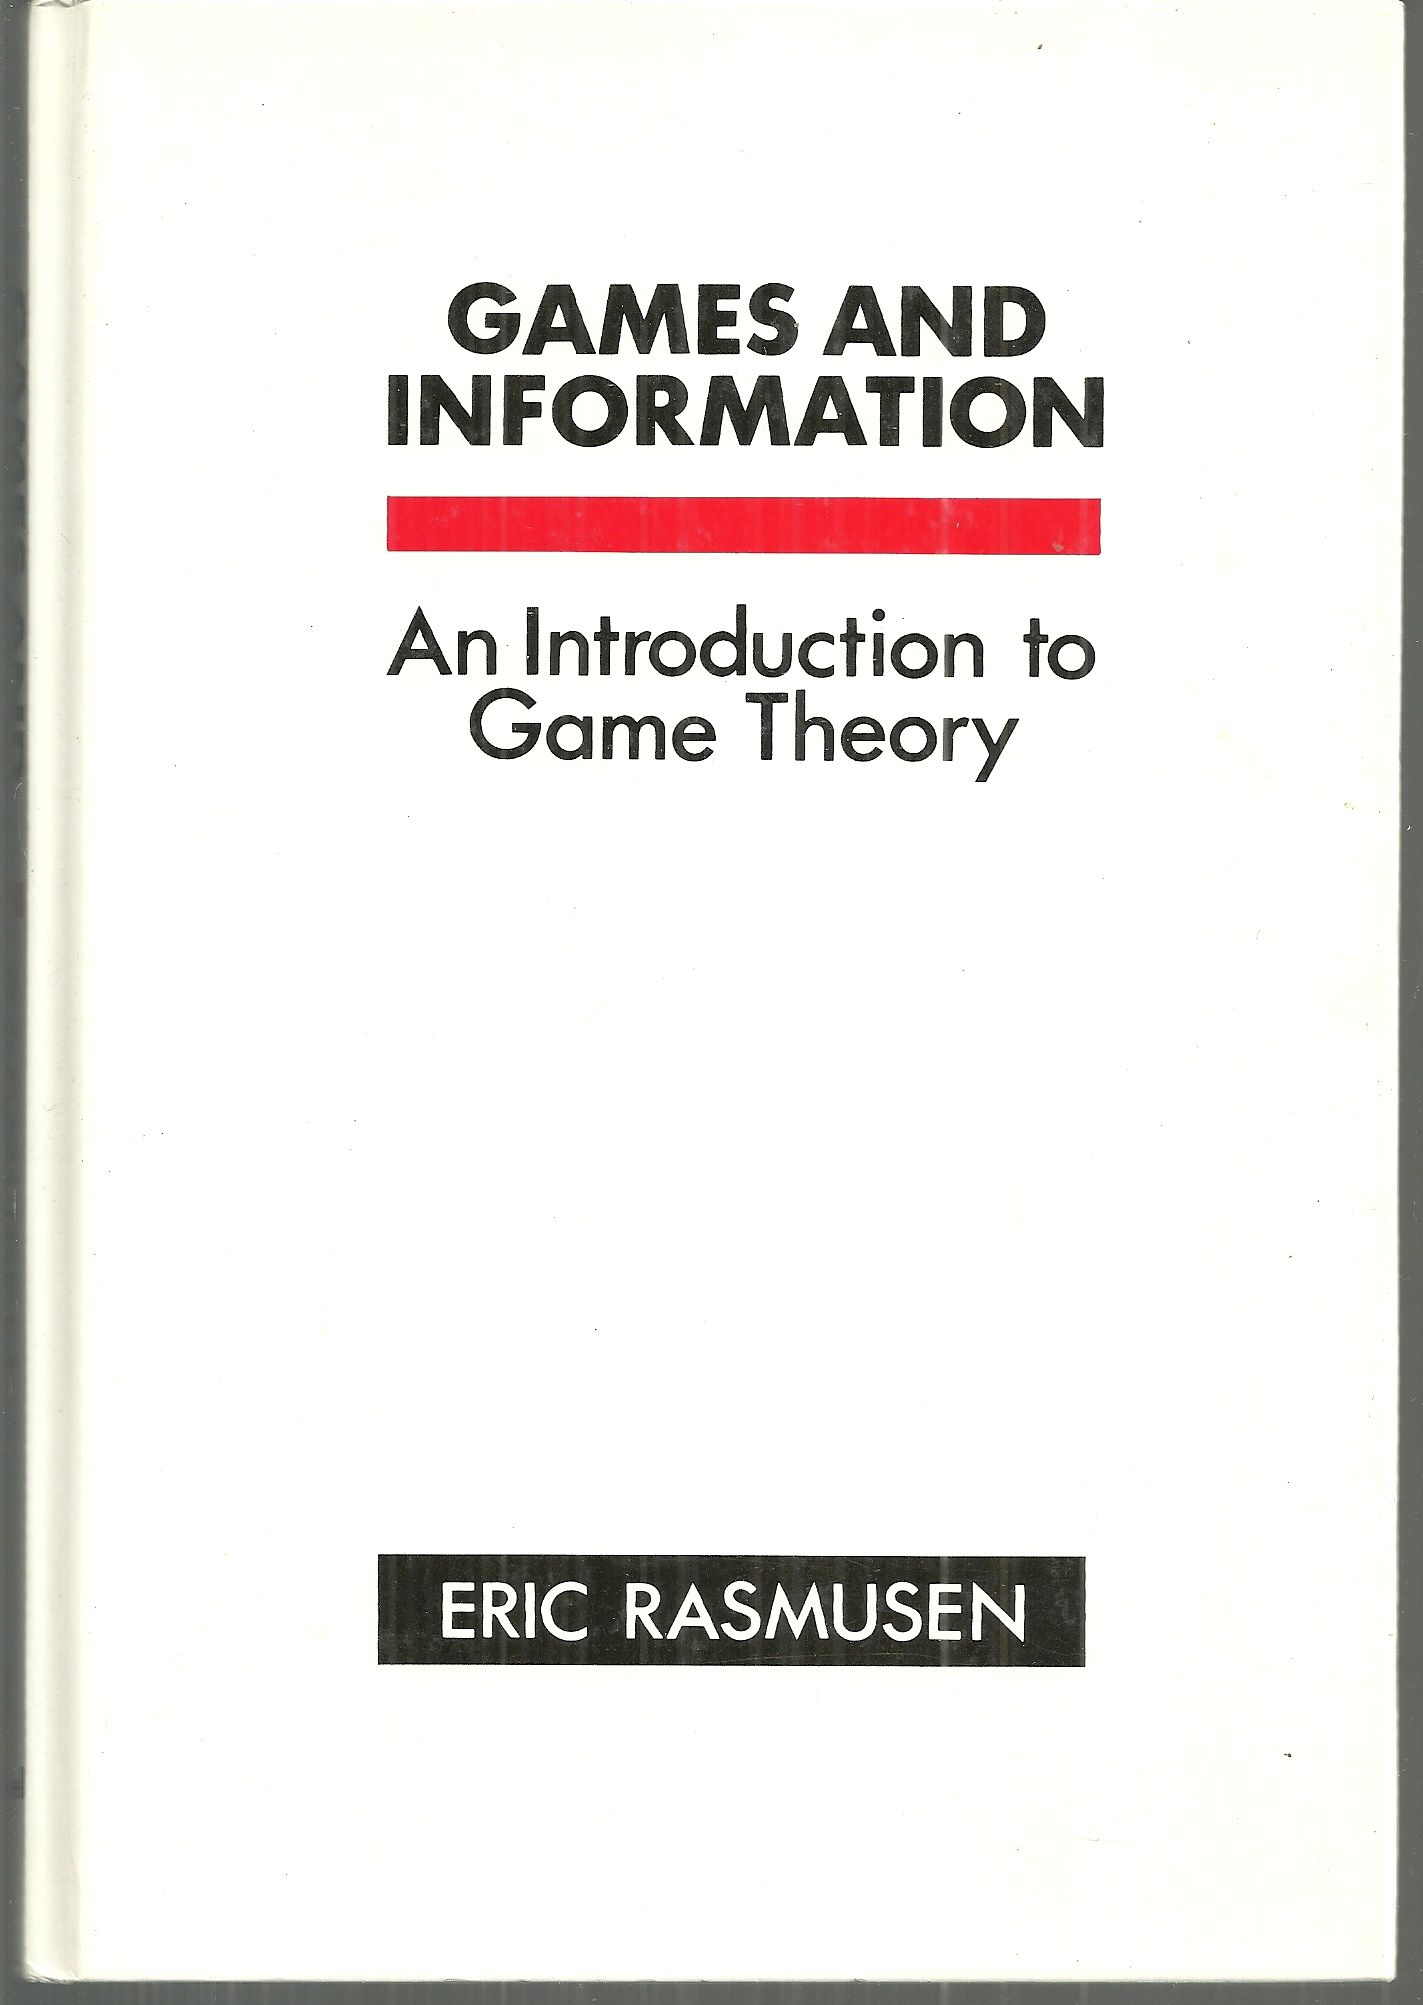 Games and Information, Rasmusen, Eric